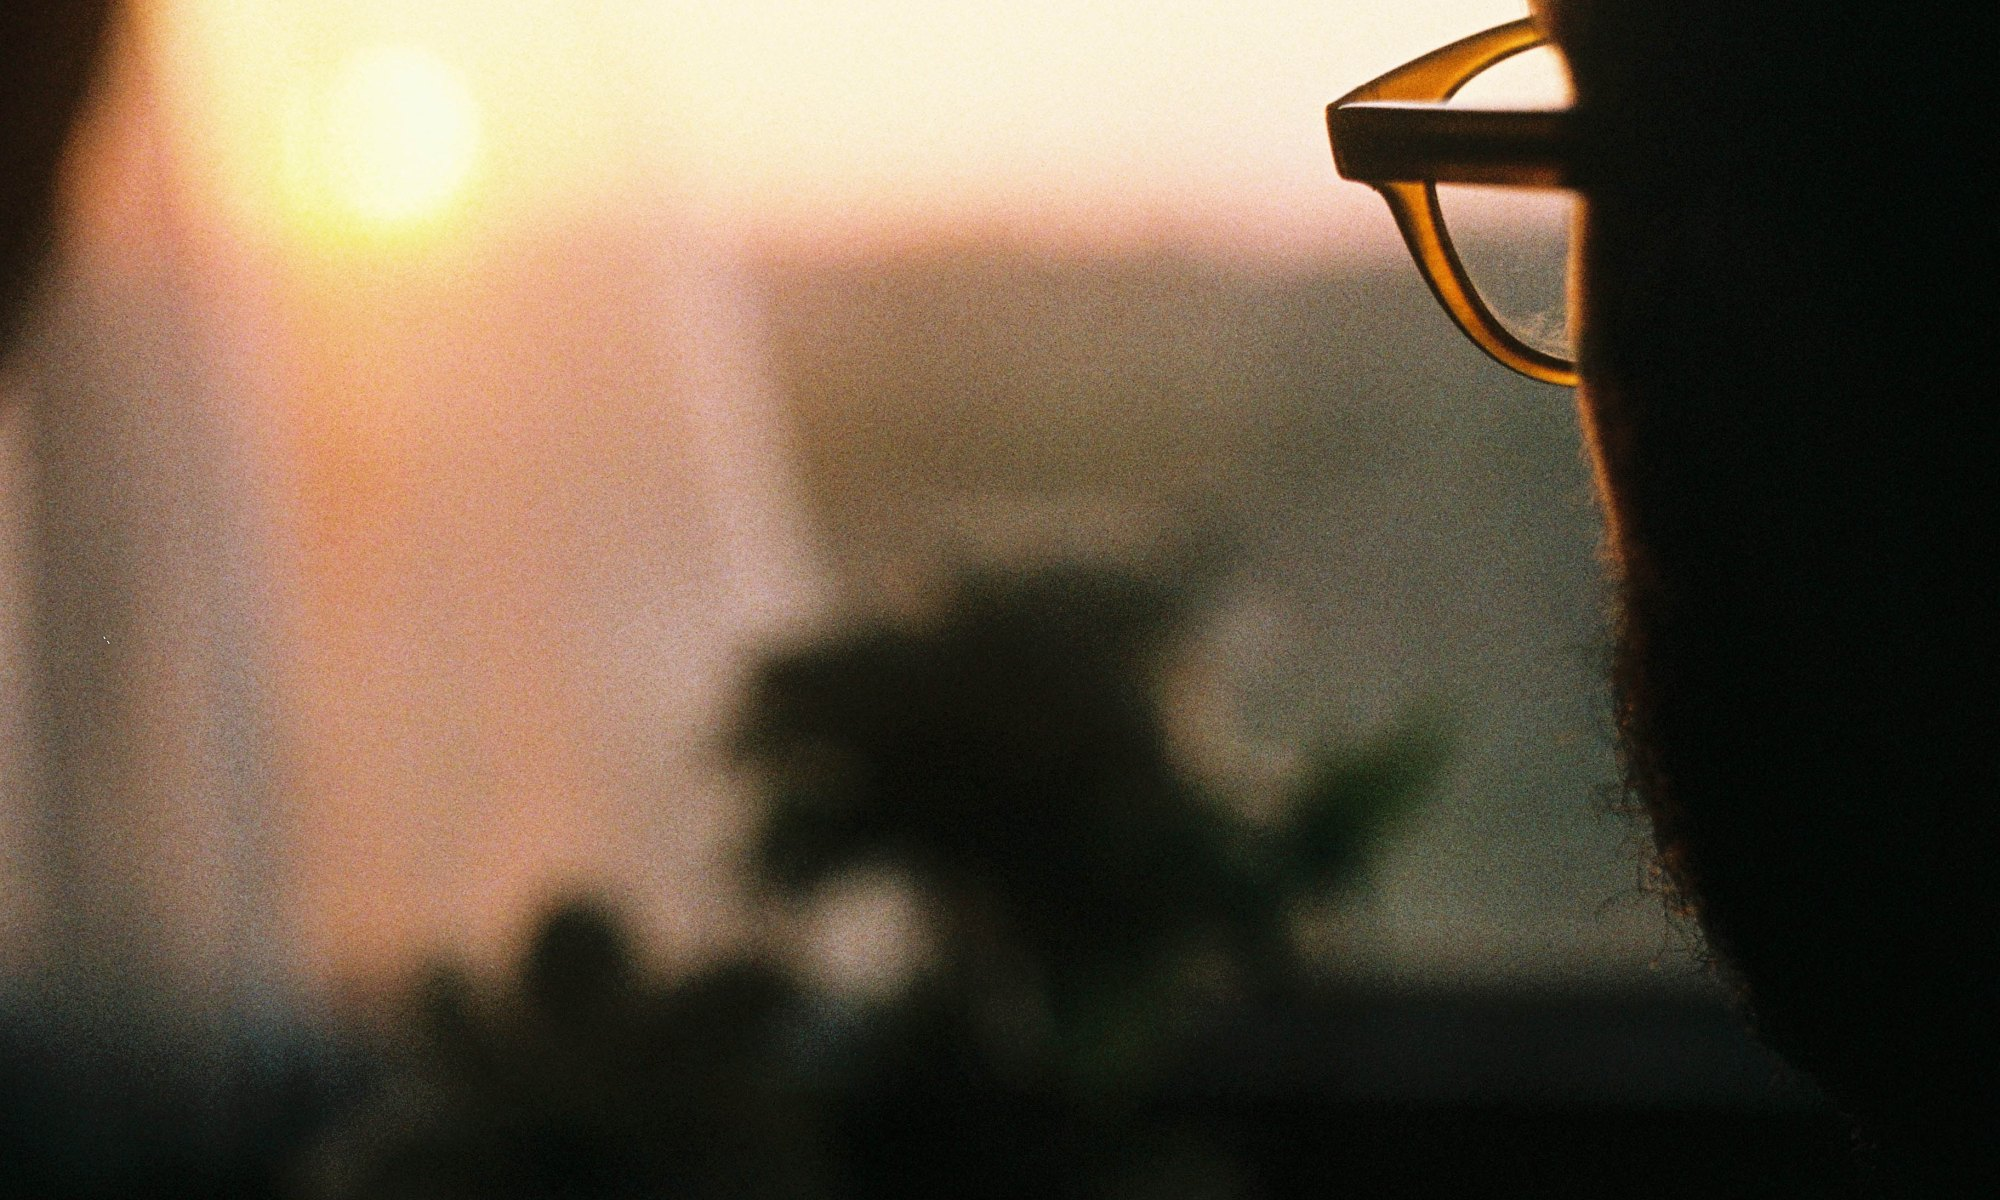 Man with eyeglasses loosening his mind and staring into the distance